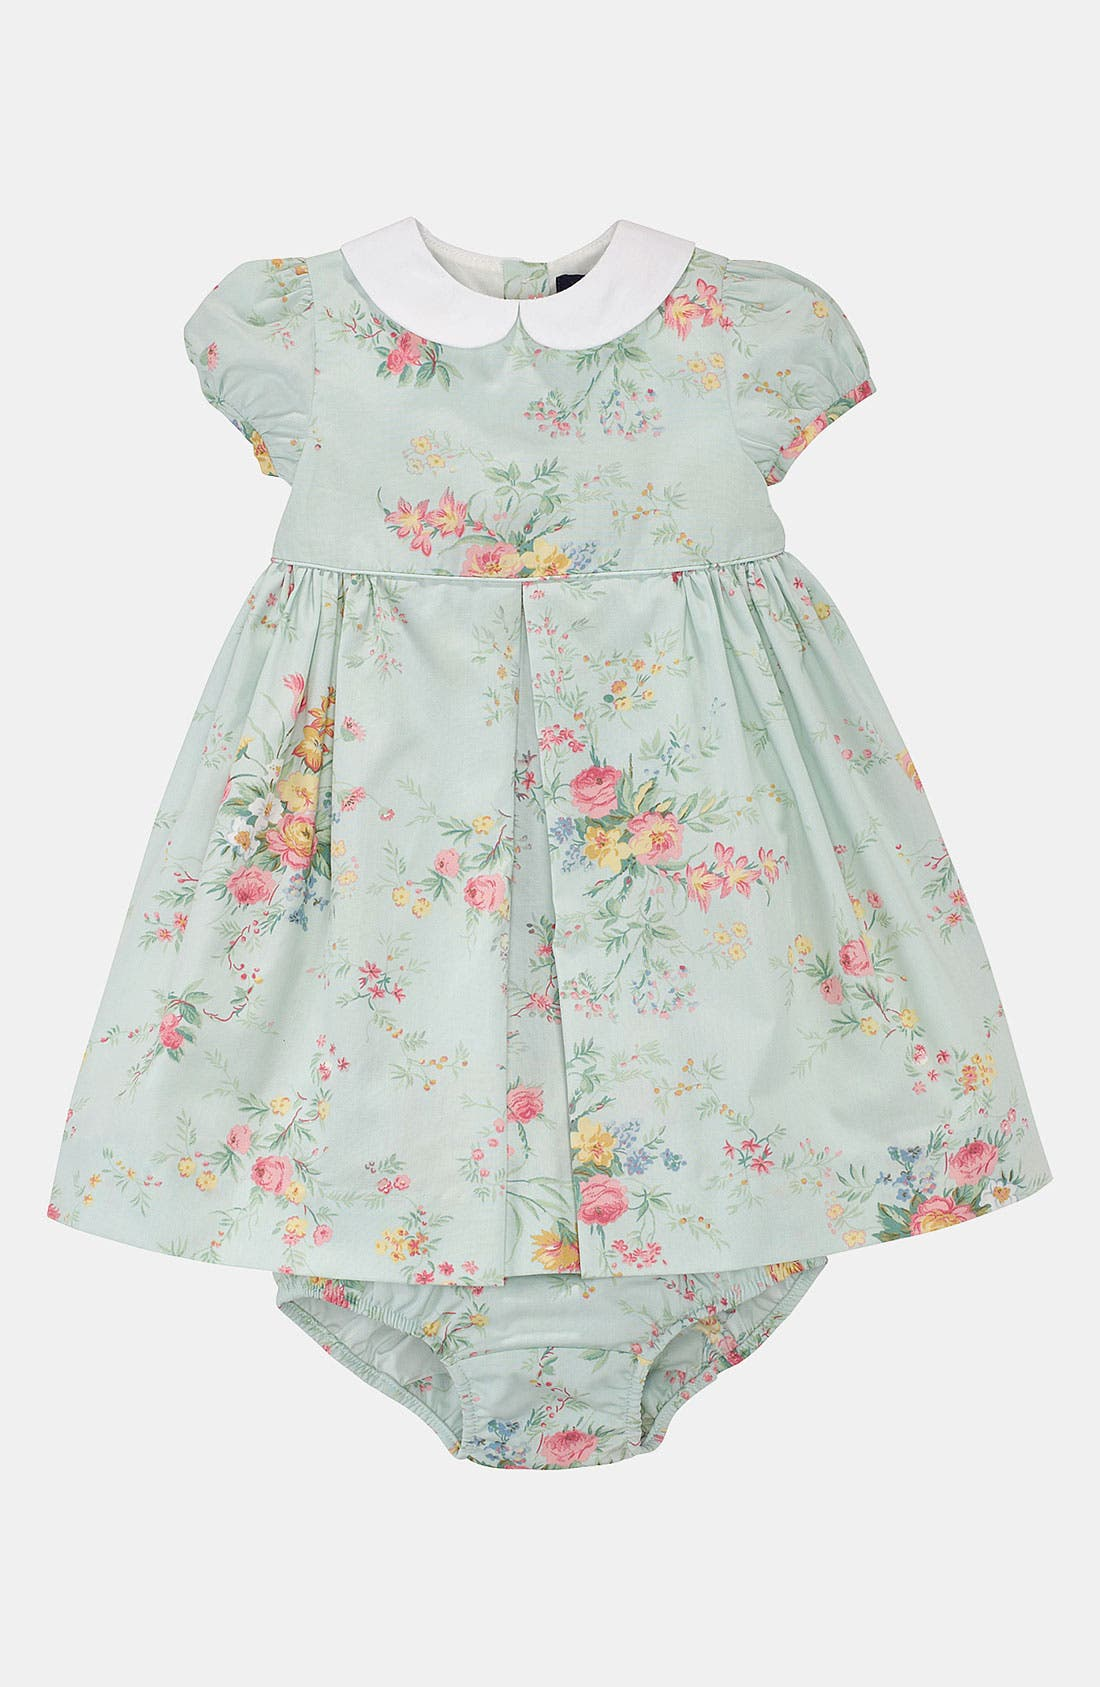 Main Image - Ralph Lauren Floral Dress & Bloomers (Infant)